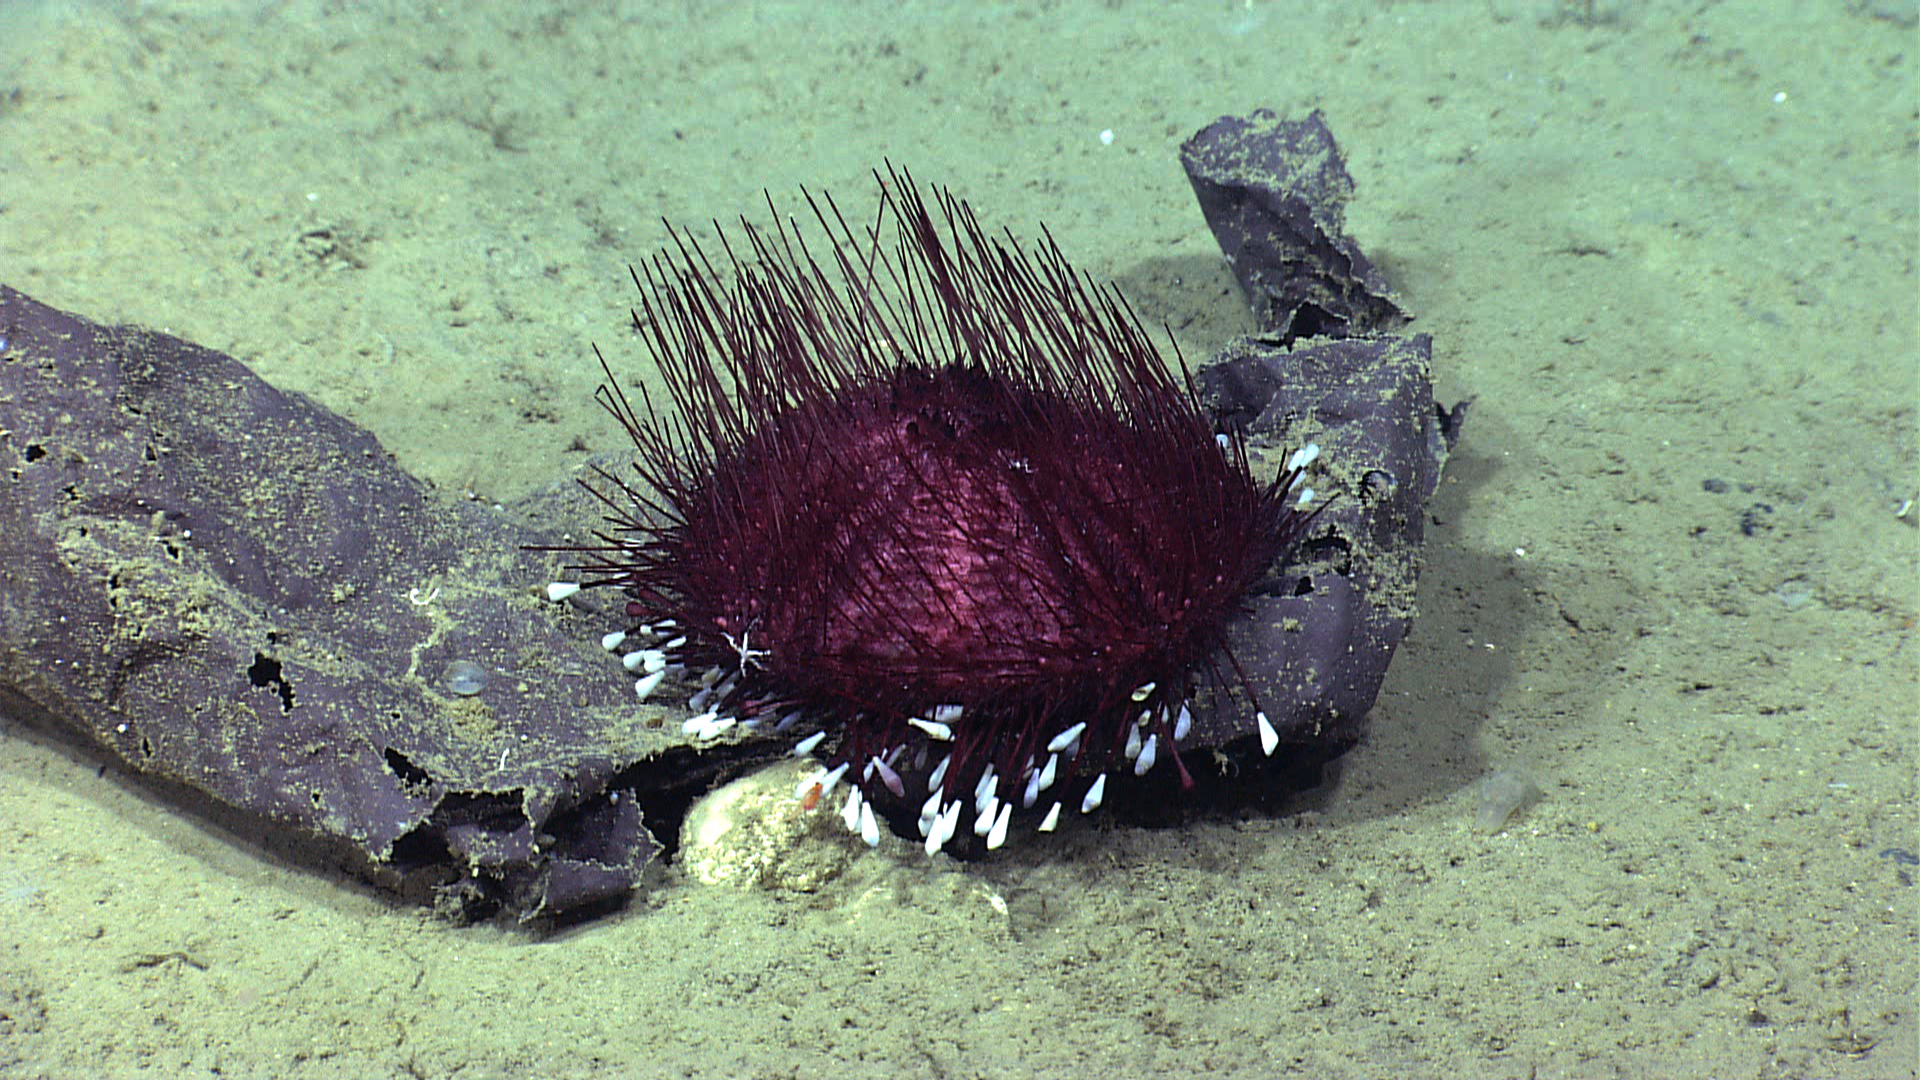 Unlike urchins along the shore, these deep-sea urchins don't have a hard skeleton. When brought to the surface they deflate into their namesake pancake shape.